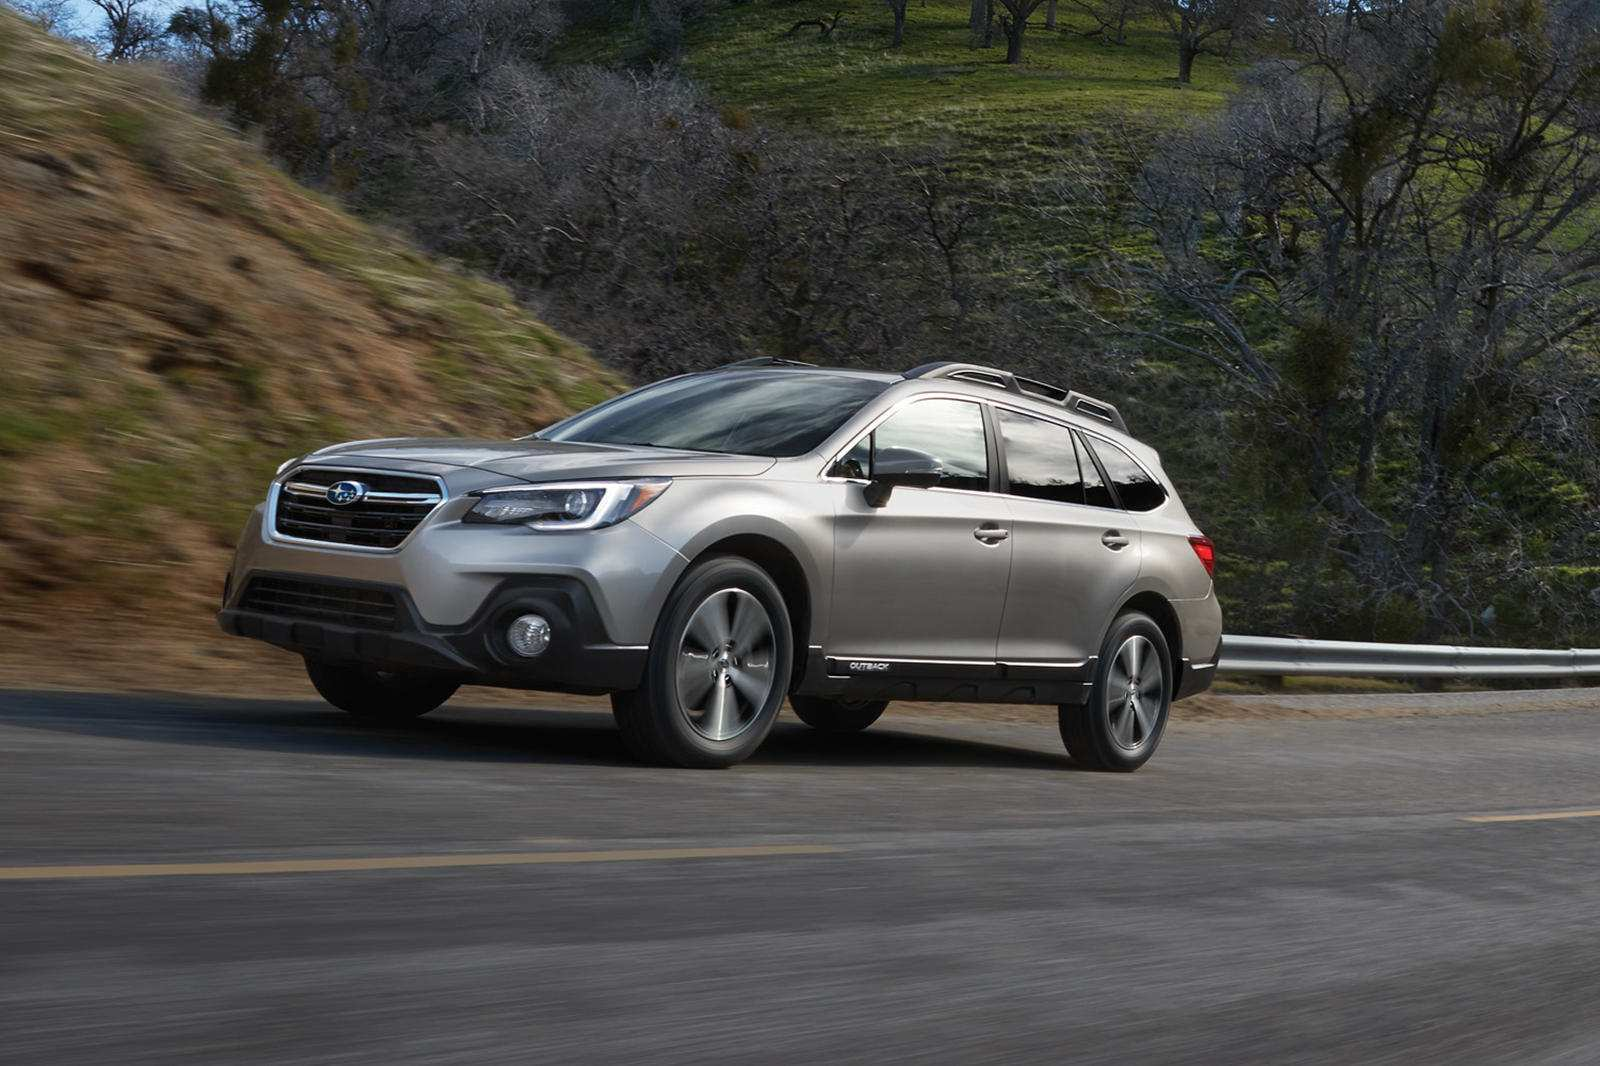 44 New 2020 Subaru Outback Dimensions Configurations by 2020 Subaru Outback Dimensions